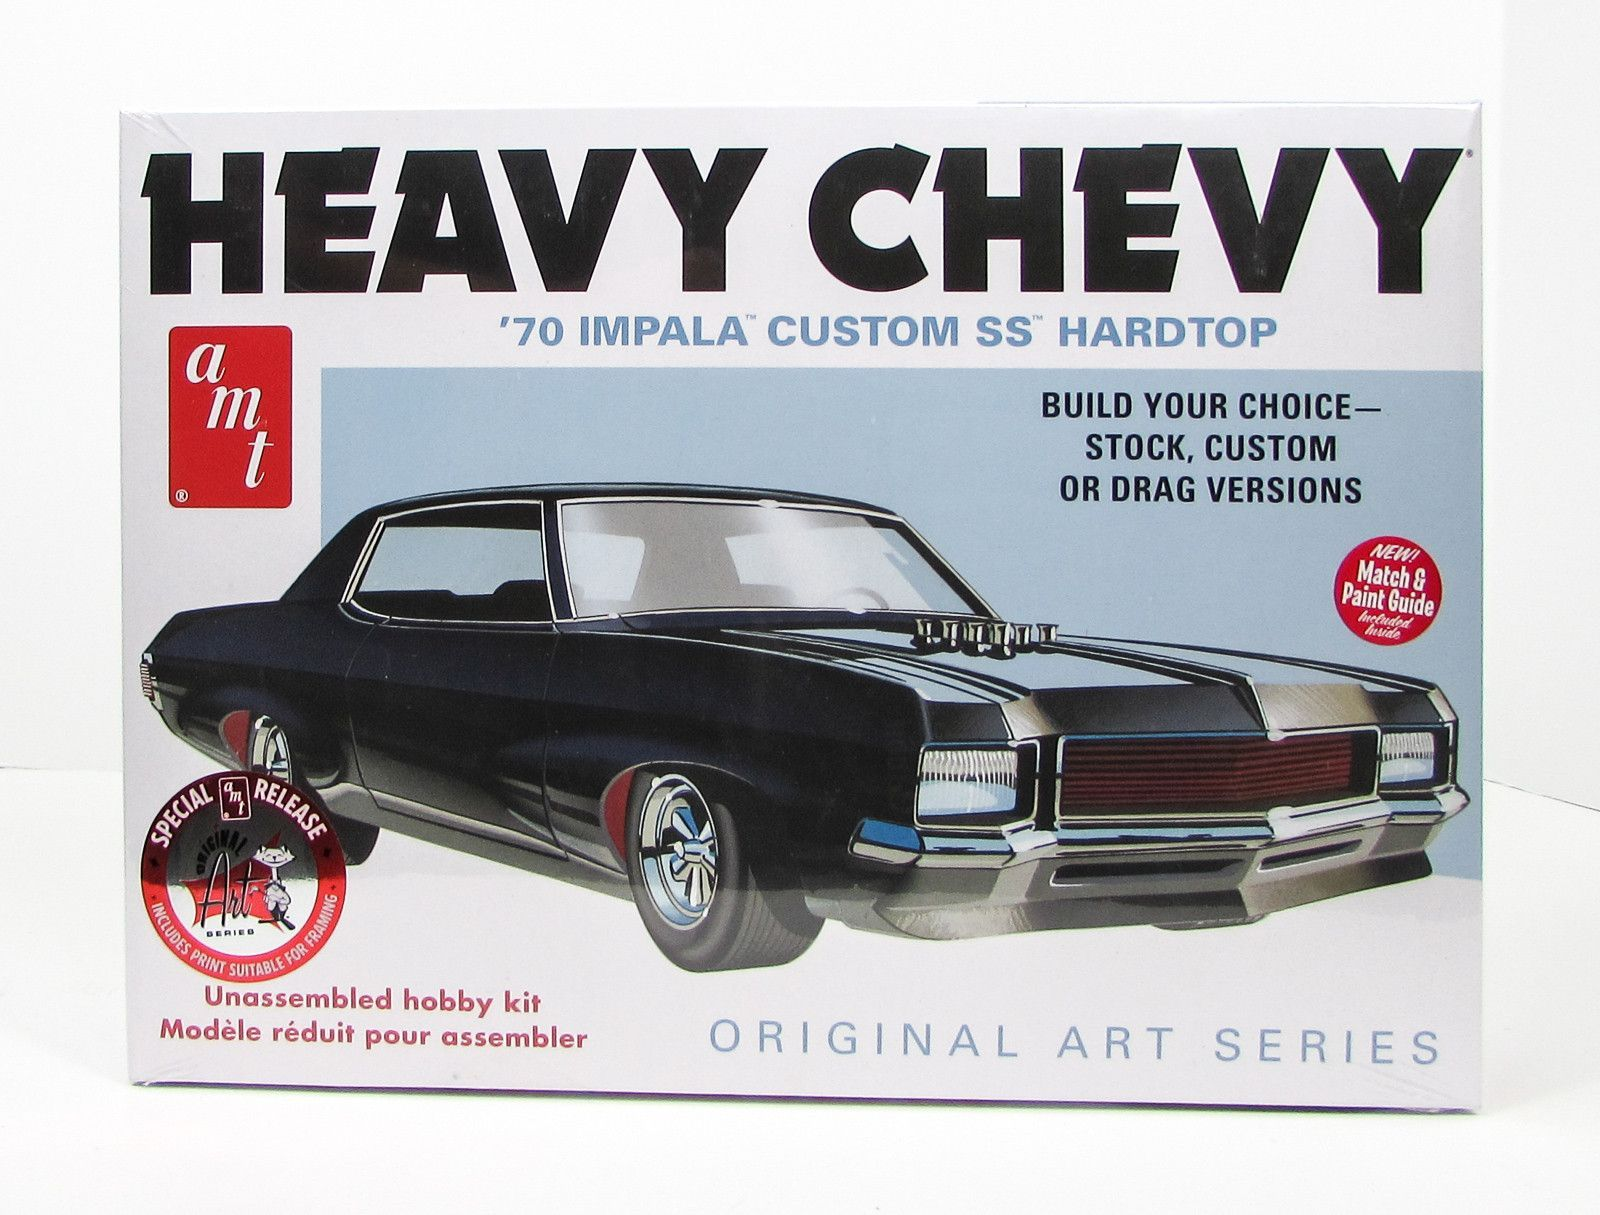 new model car kit releases1970 Chevy Impala Heavy Chevy AMT 895 125 New Car Plastic Model